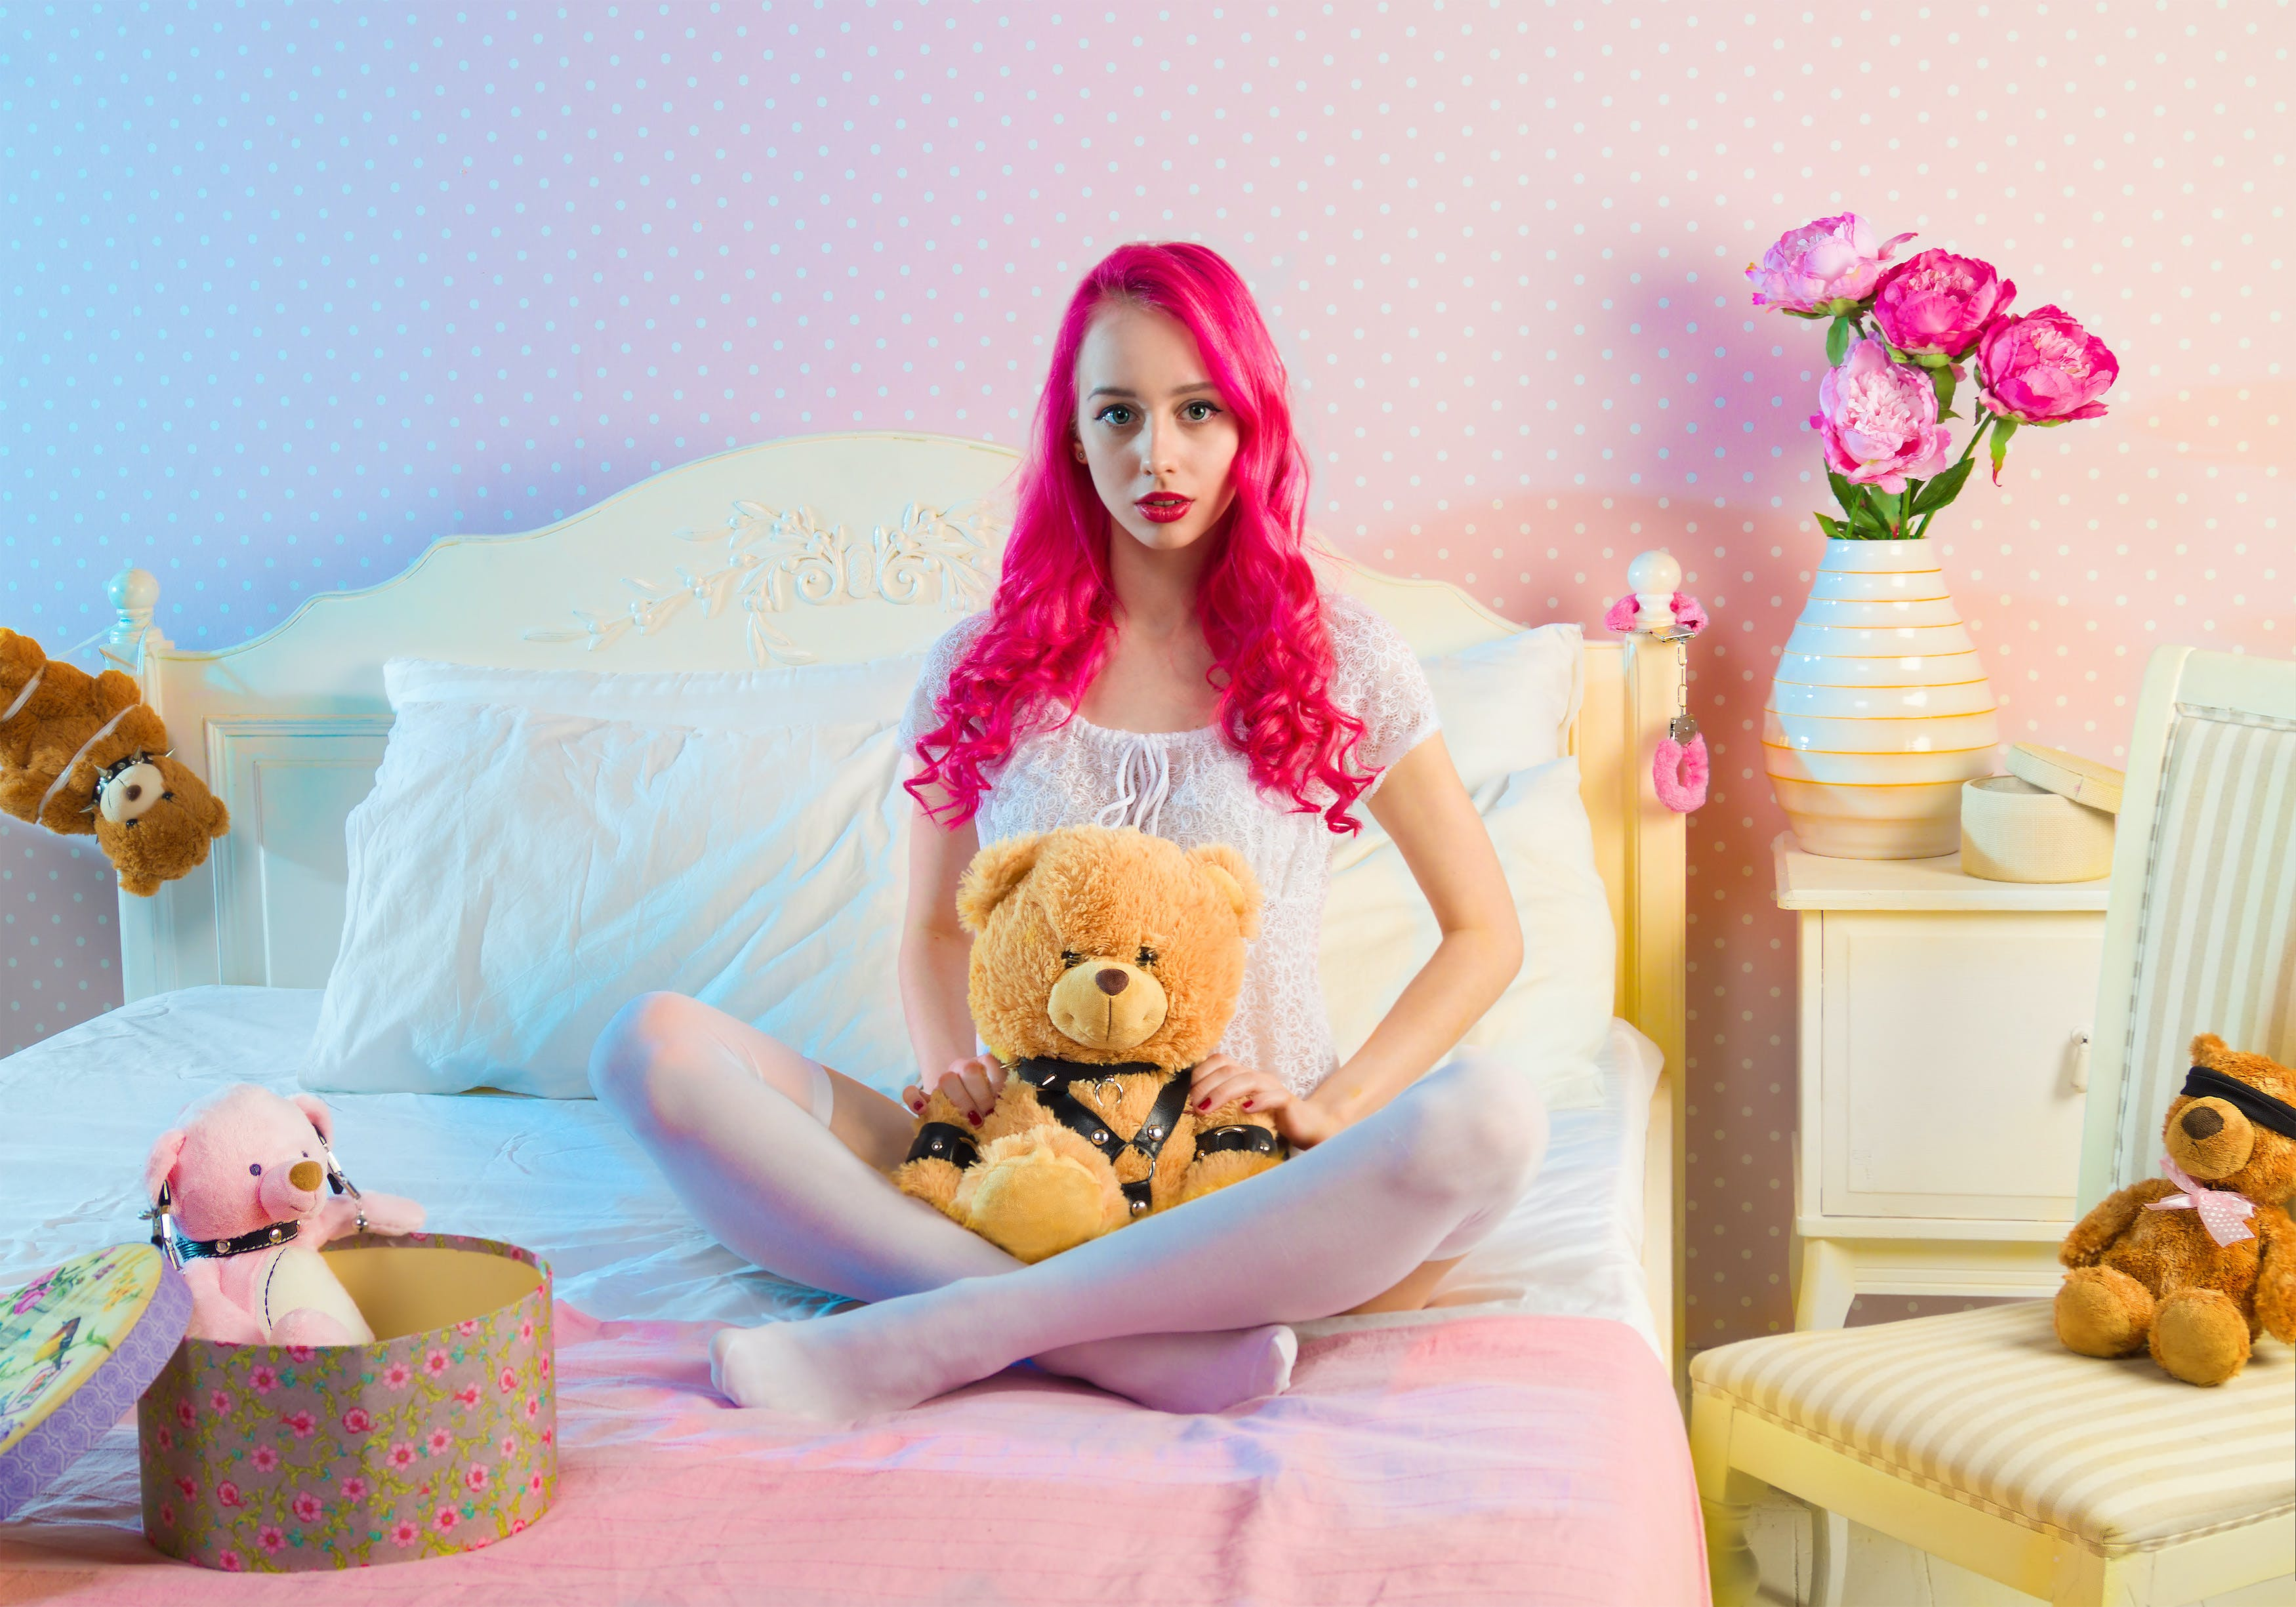 Pink Long Haired Woman Sitting on Double Bed With Bear Plsuh Toy at Daylight